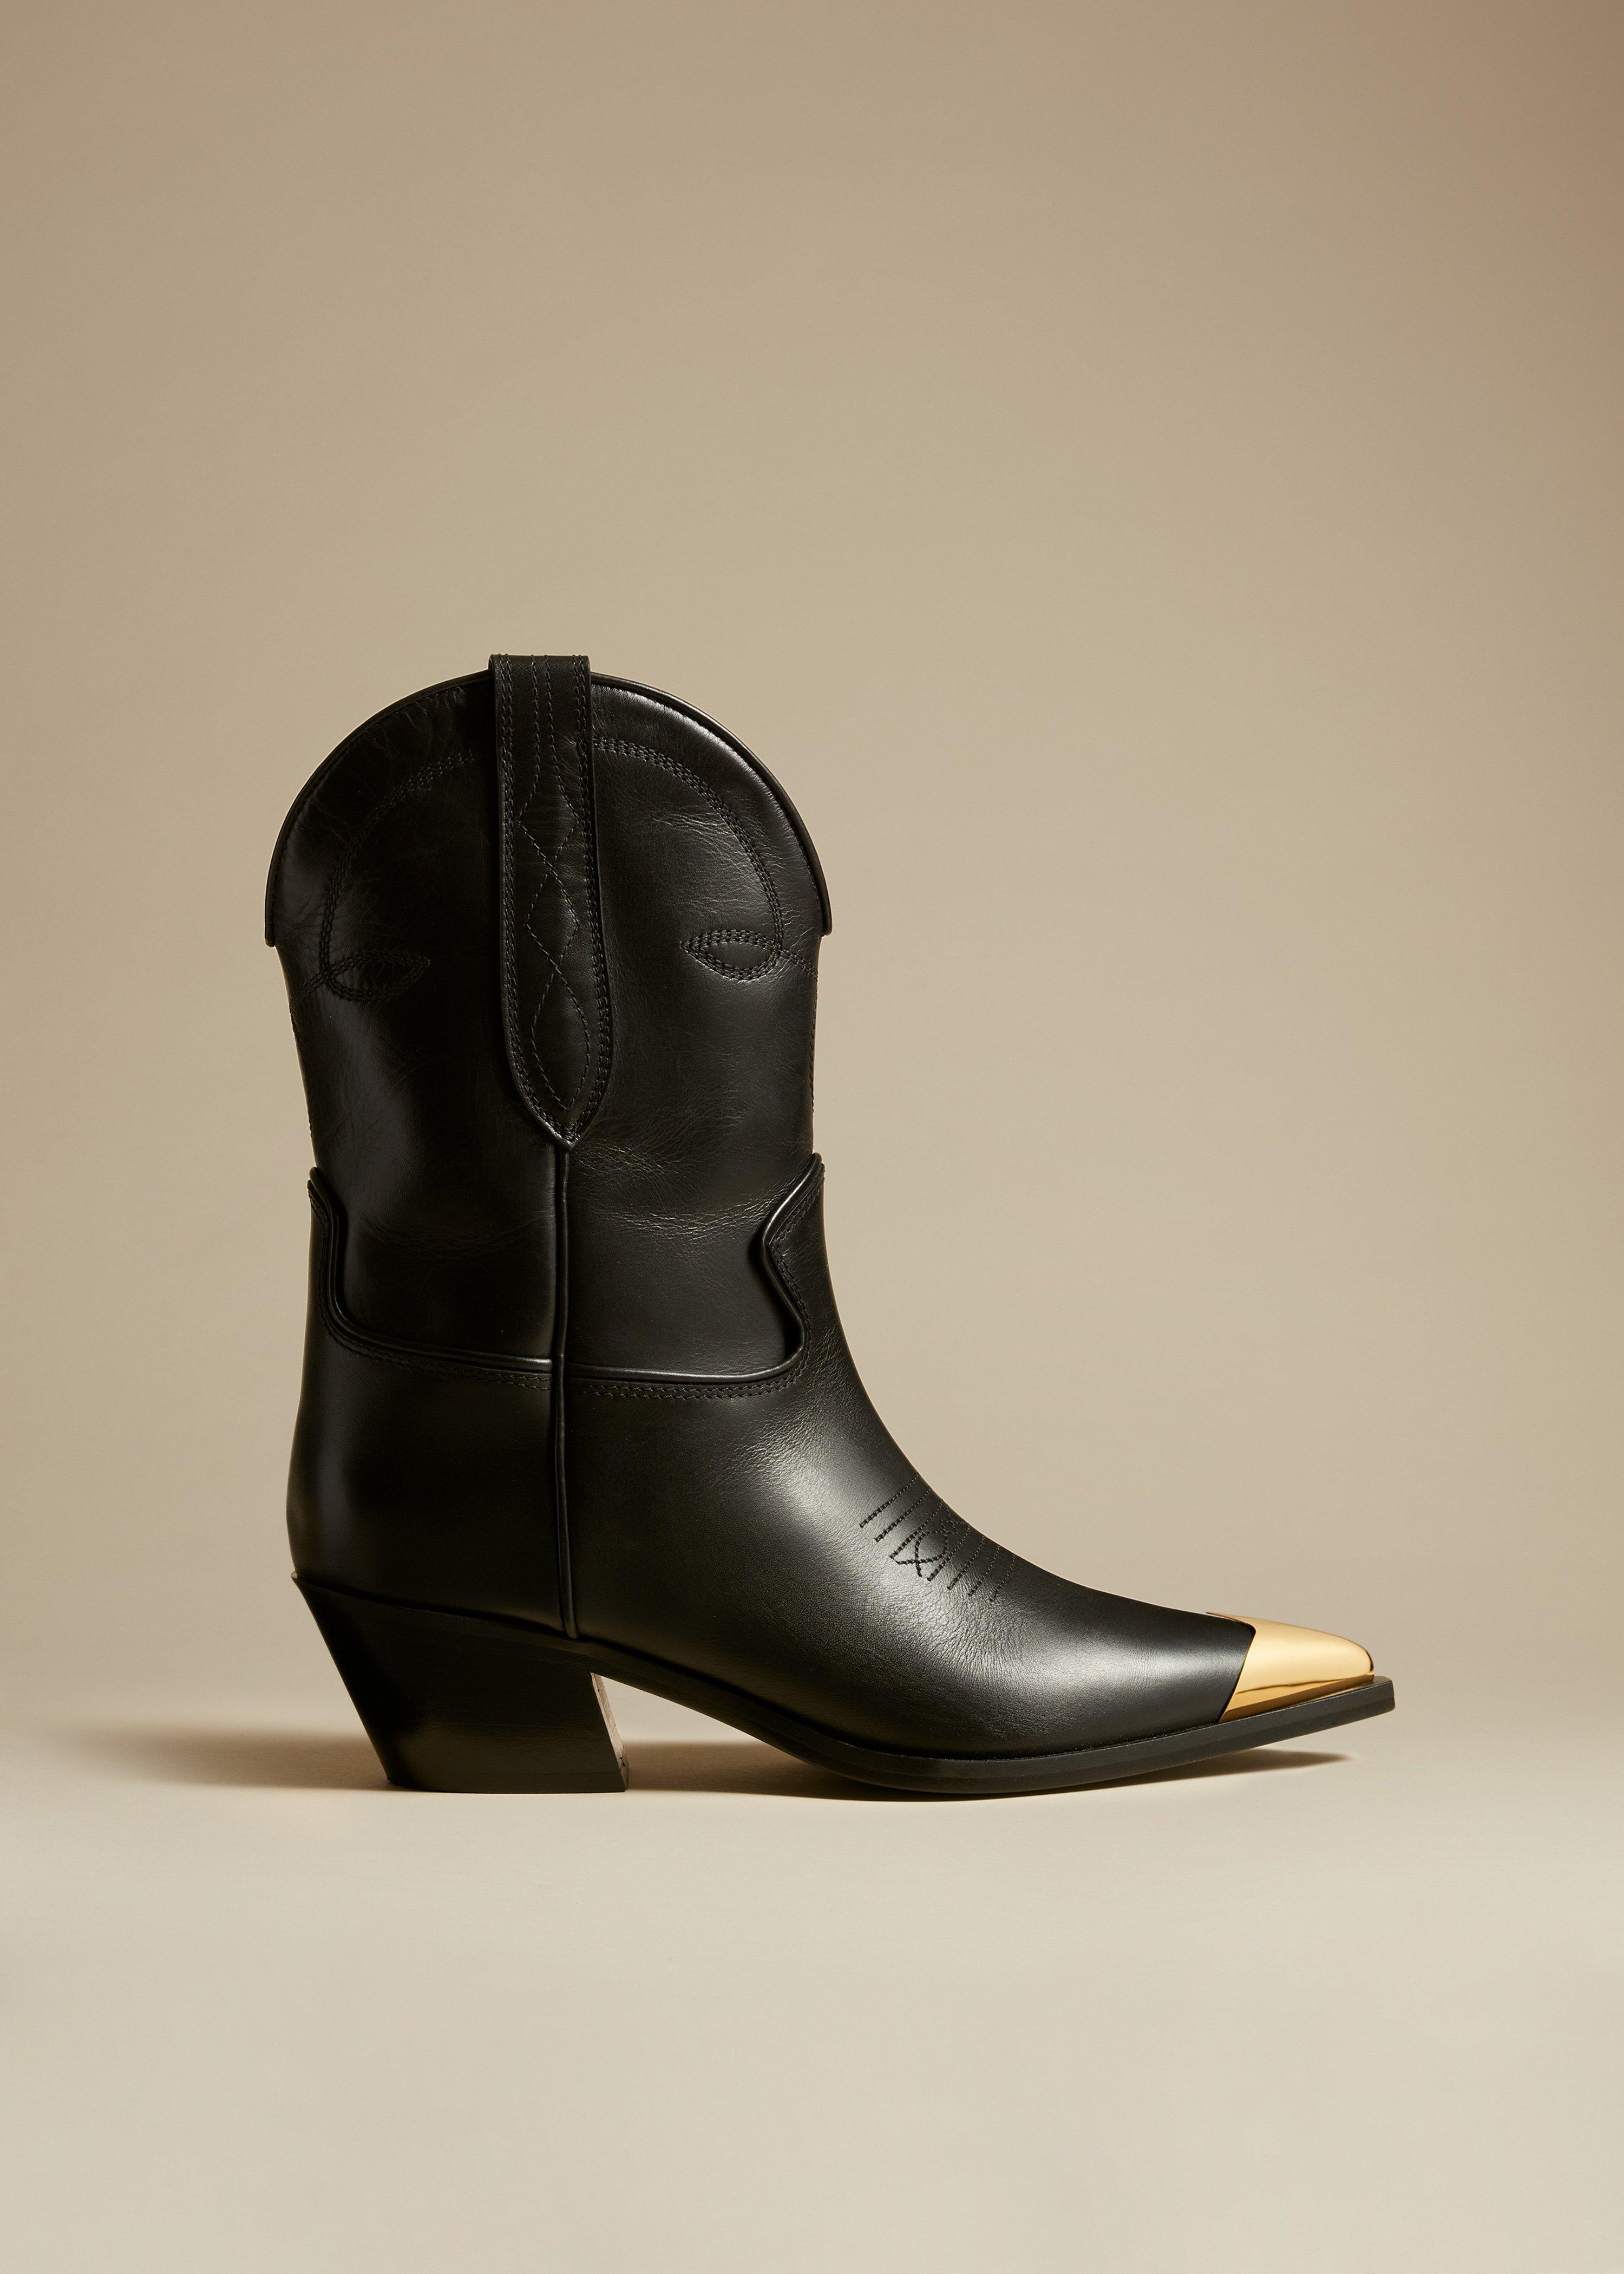 The Fontana Ankle Boot in Black Leather